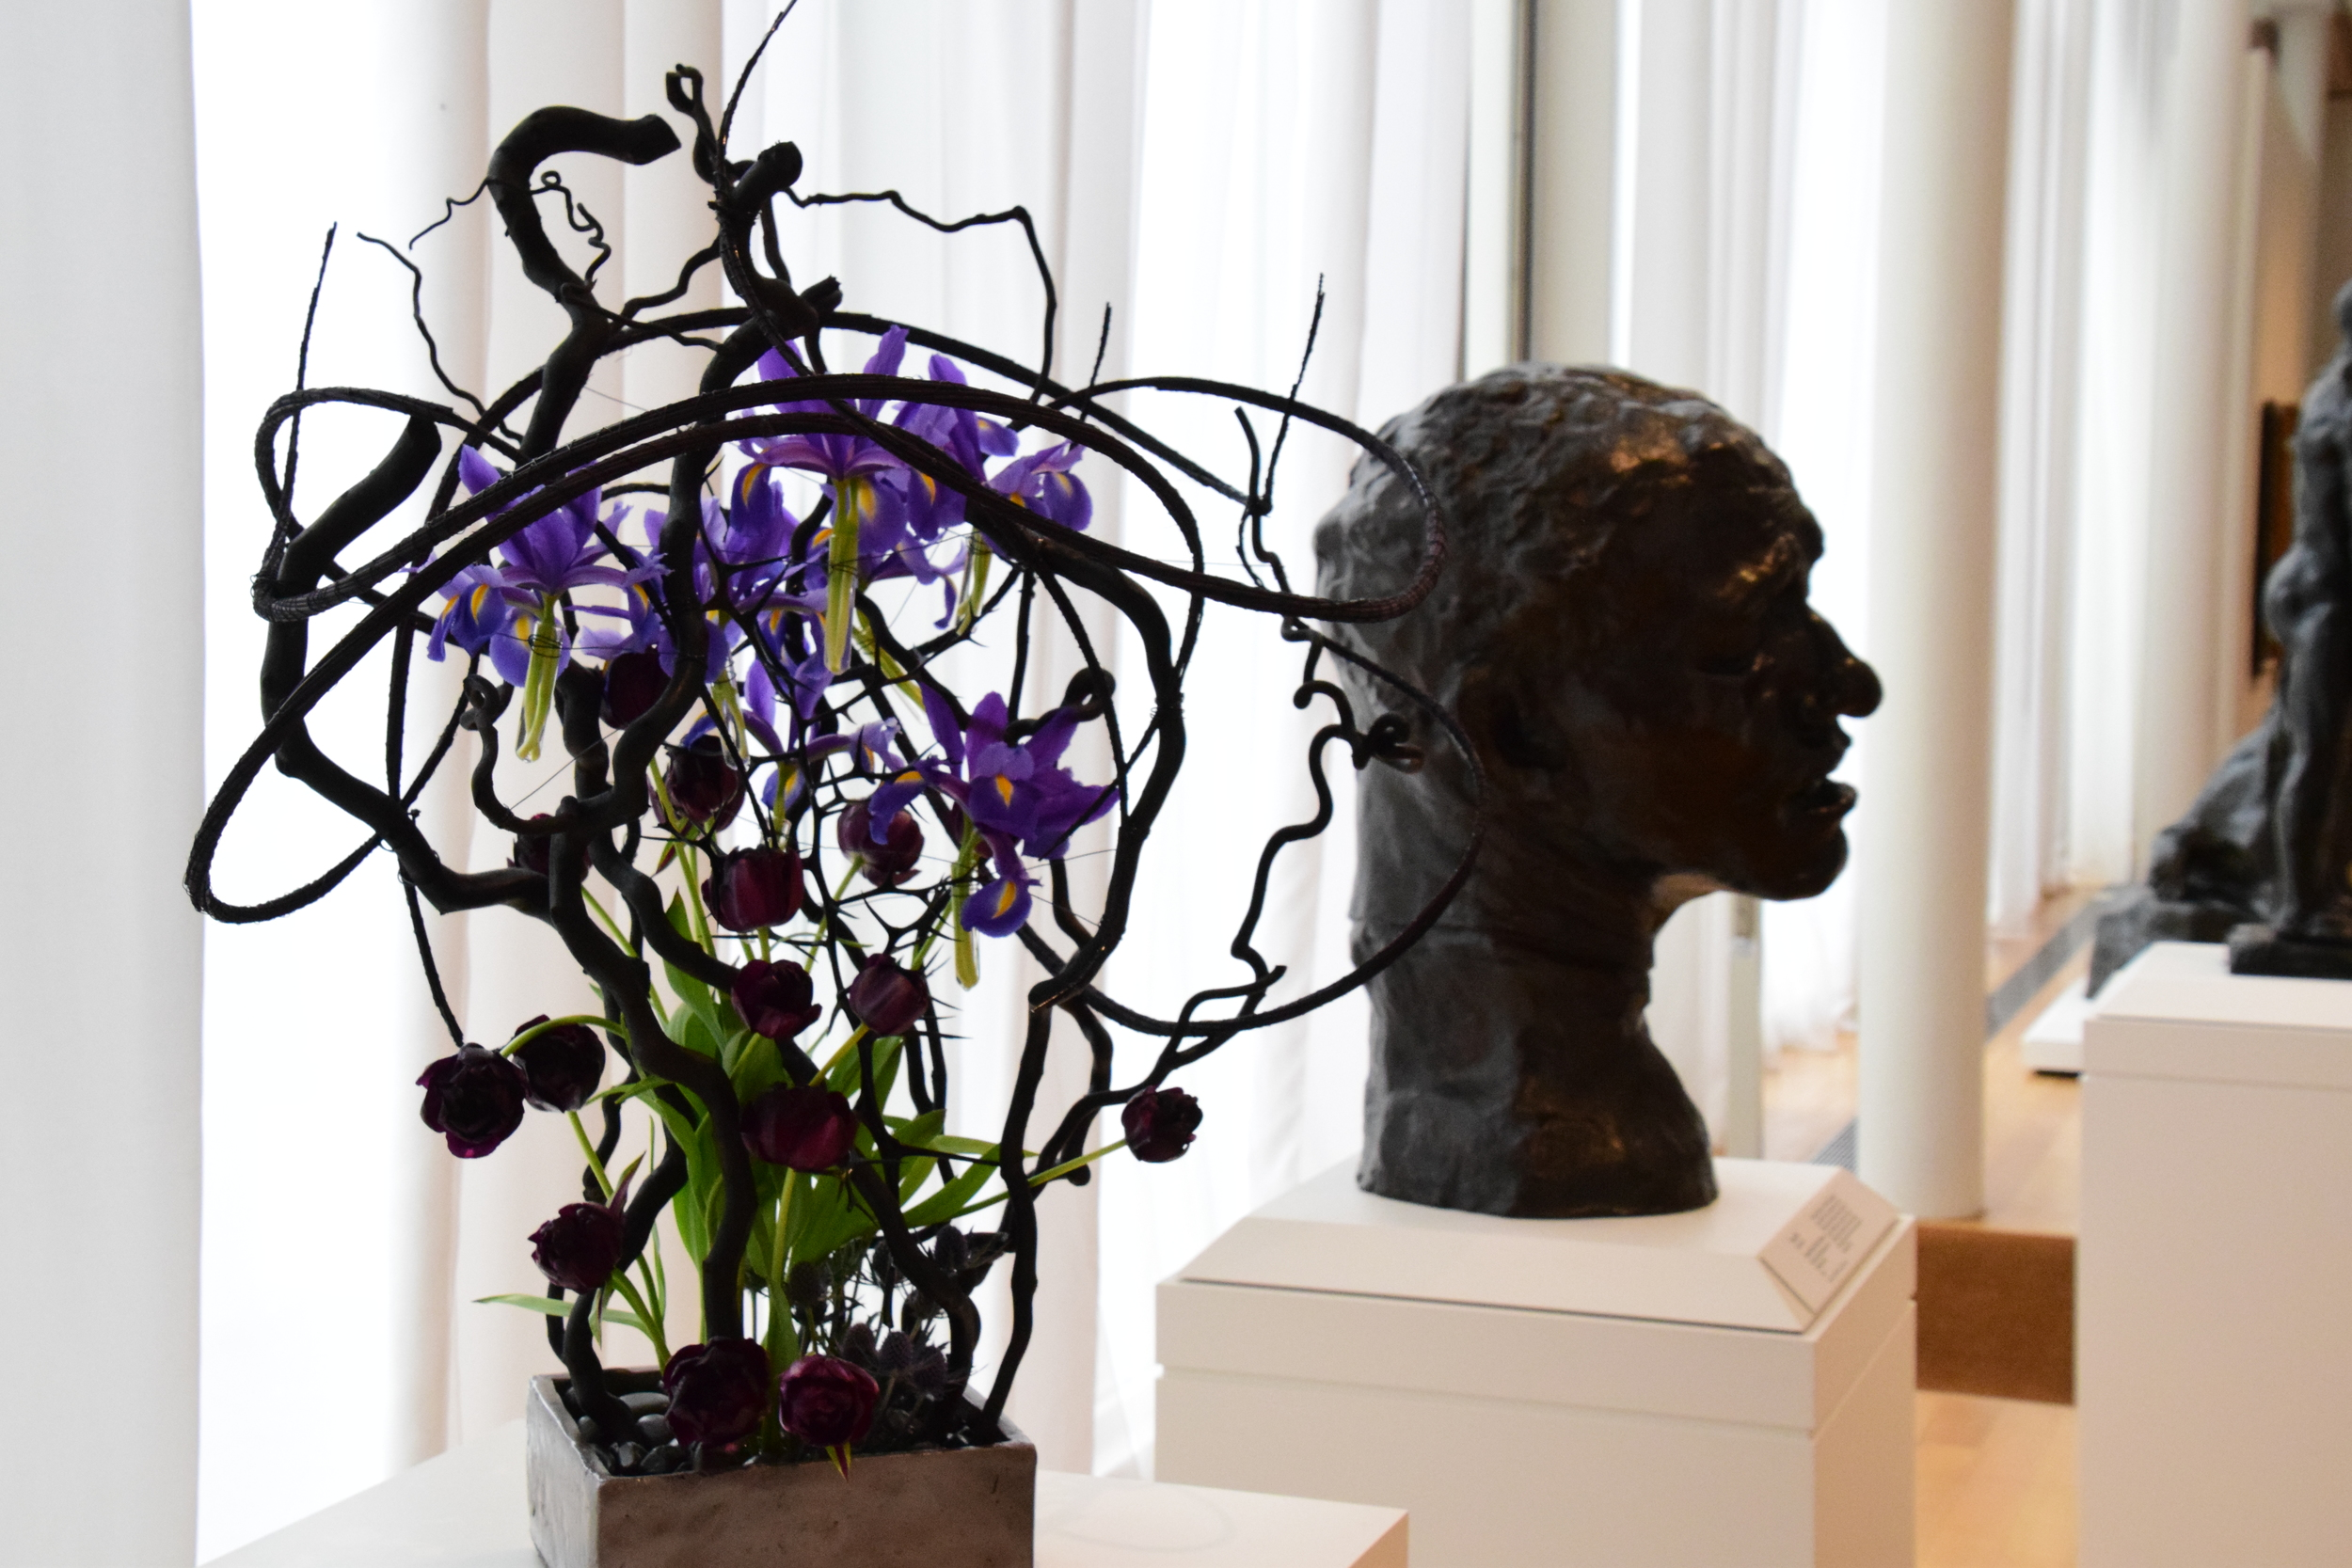 NCMA Art in Bloom